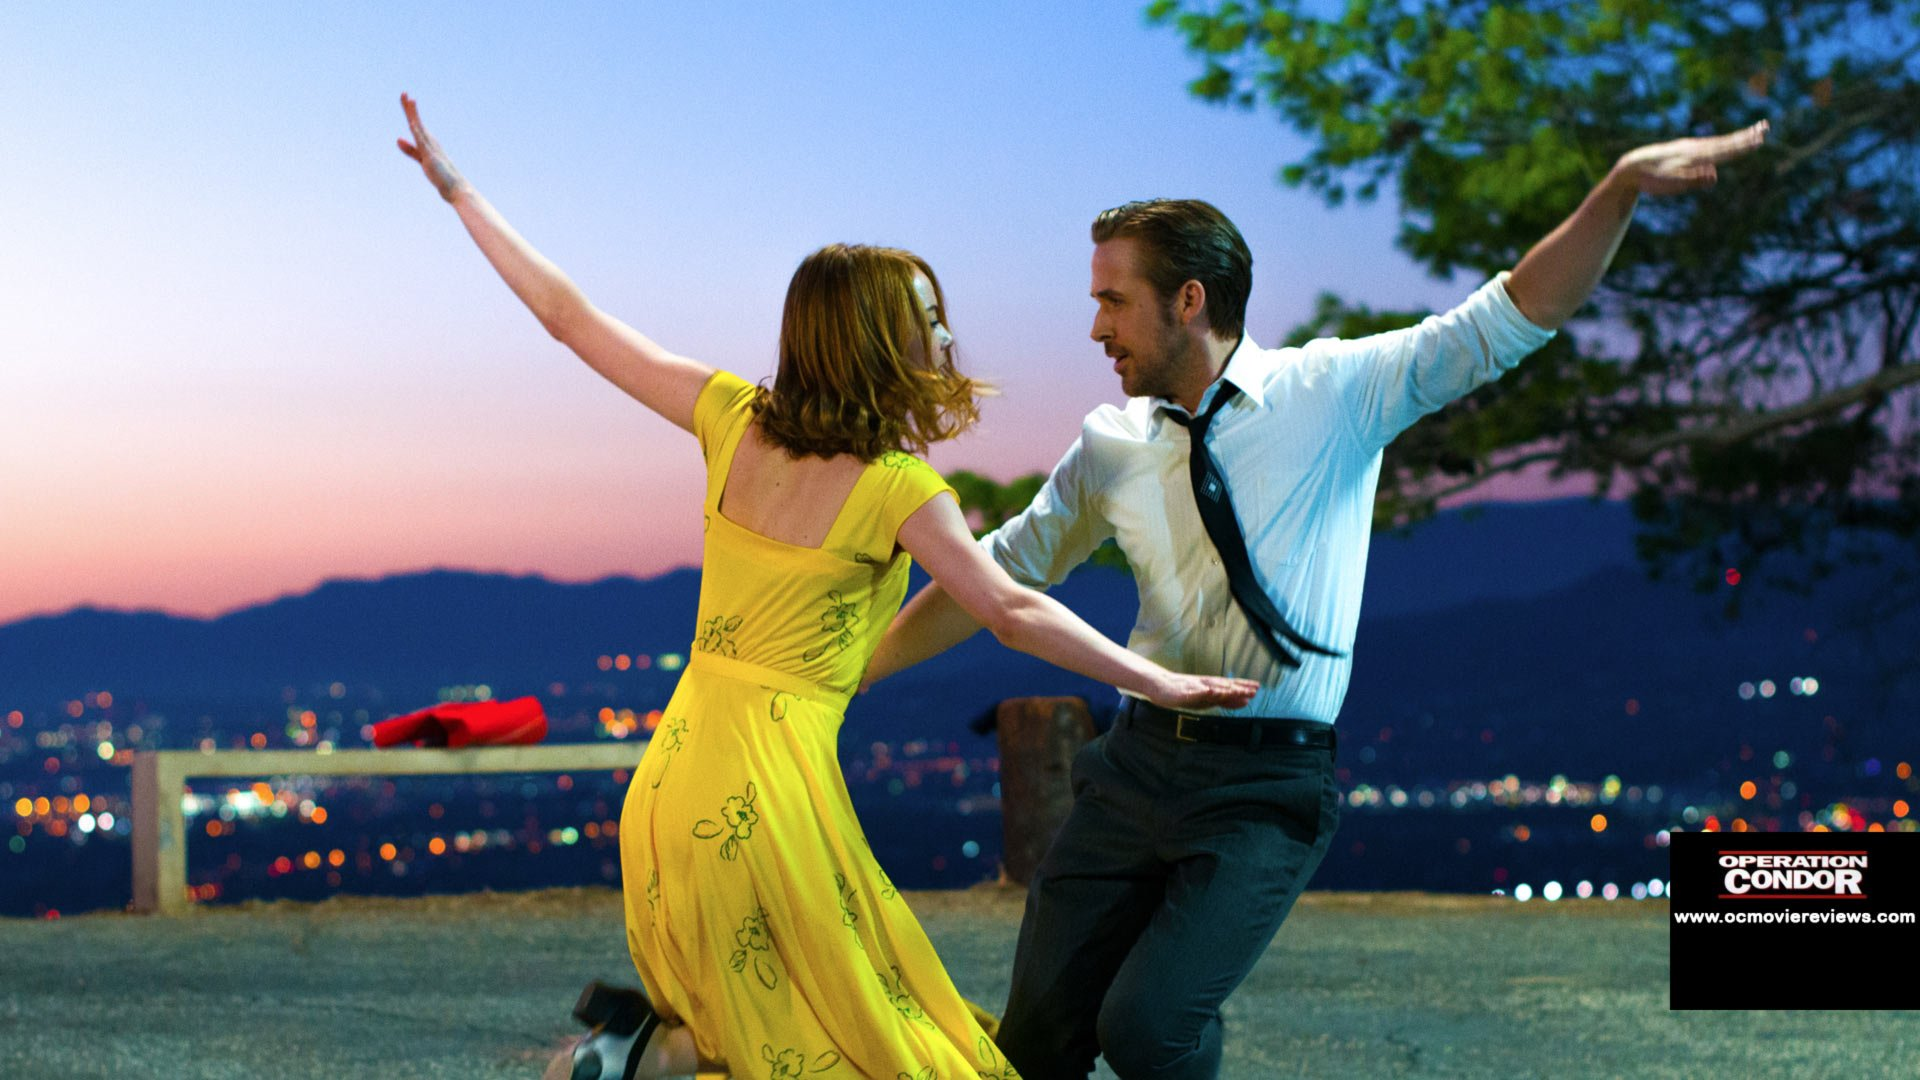 La La Land Review - OC Movie Reviews - Movie Reviews, Movie News, Documentary Reviews, Short Films, Short Film Reviews, Trailers, Movie Trailers, Interviews, film reviews, film news, hollywood, indie films, documentaries